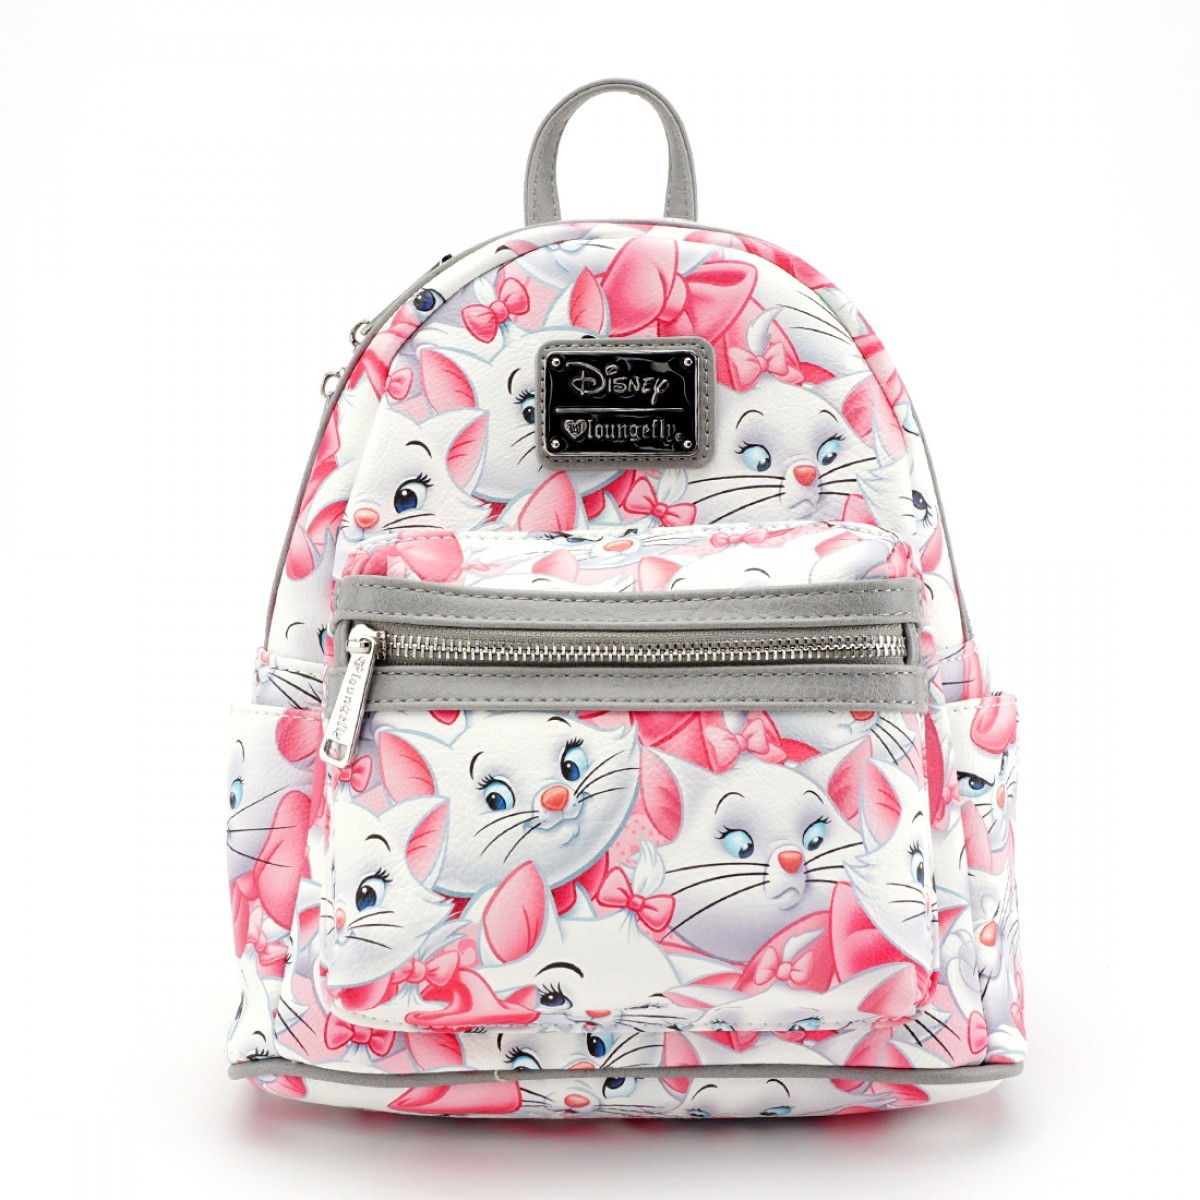 Loungefly Disney Marie Mini Backpack Images at Mighty Ape NZ